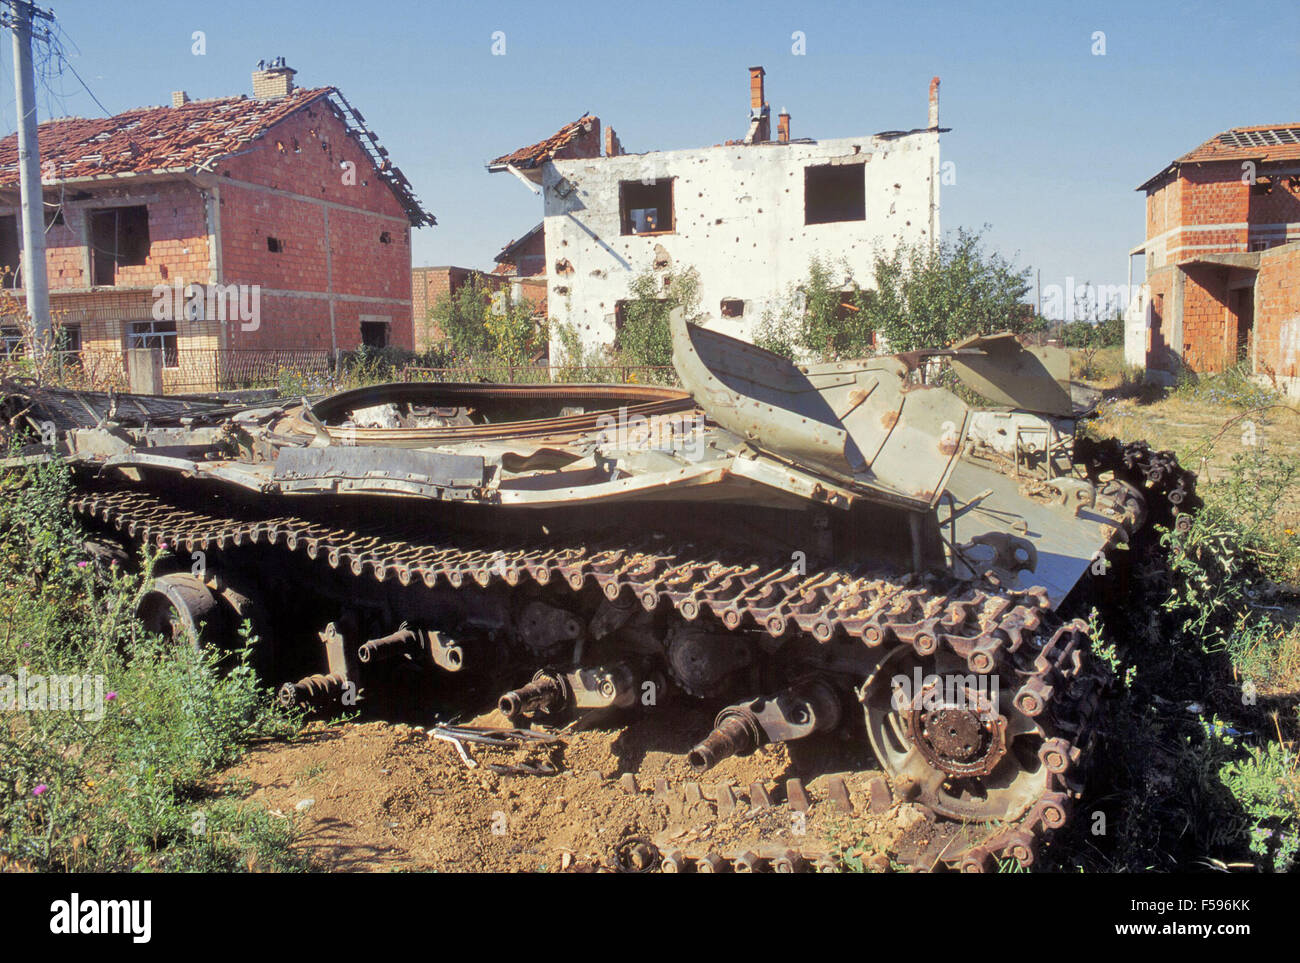 Kosovo, July 2000, Serbian tank destroyed by NATO attacks with depleted uranium grenades Stock Photo